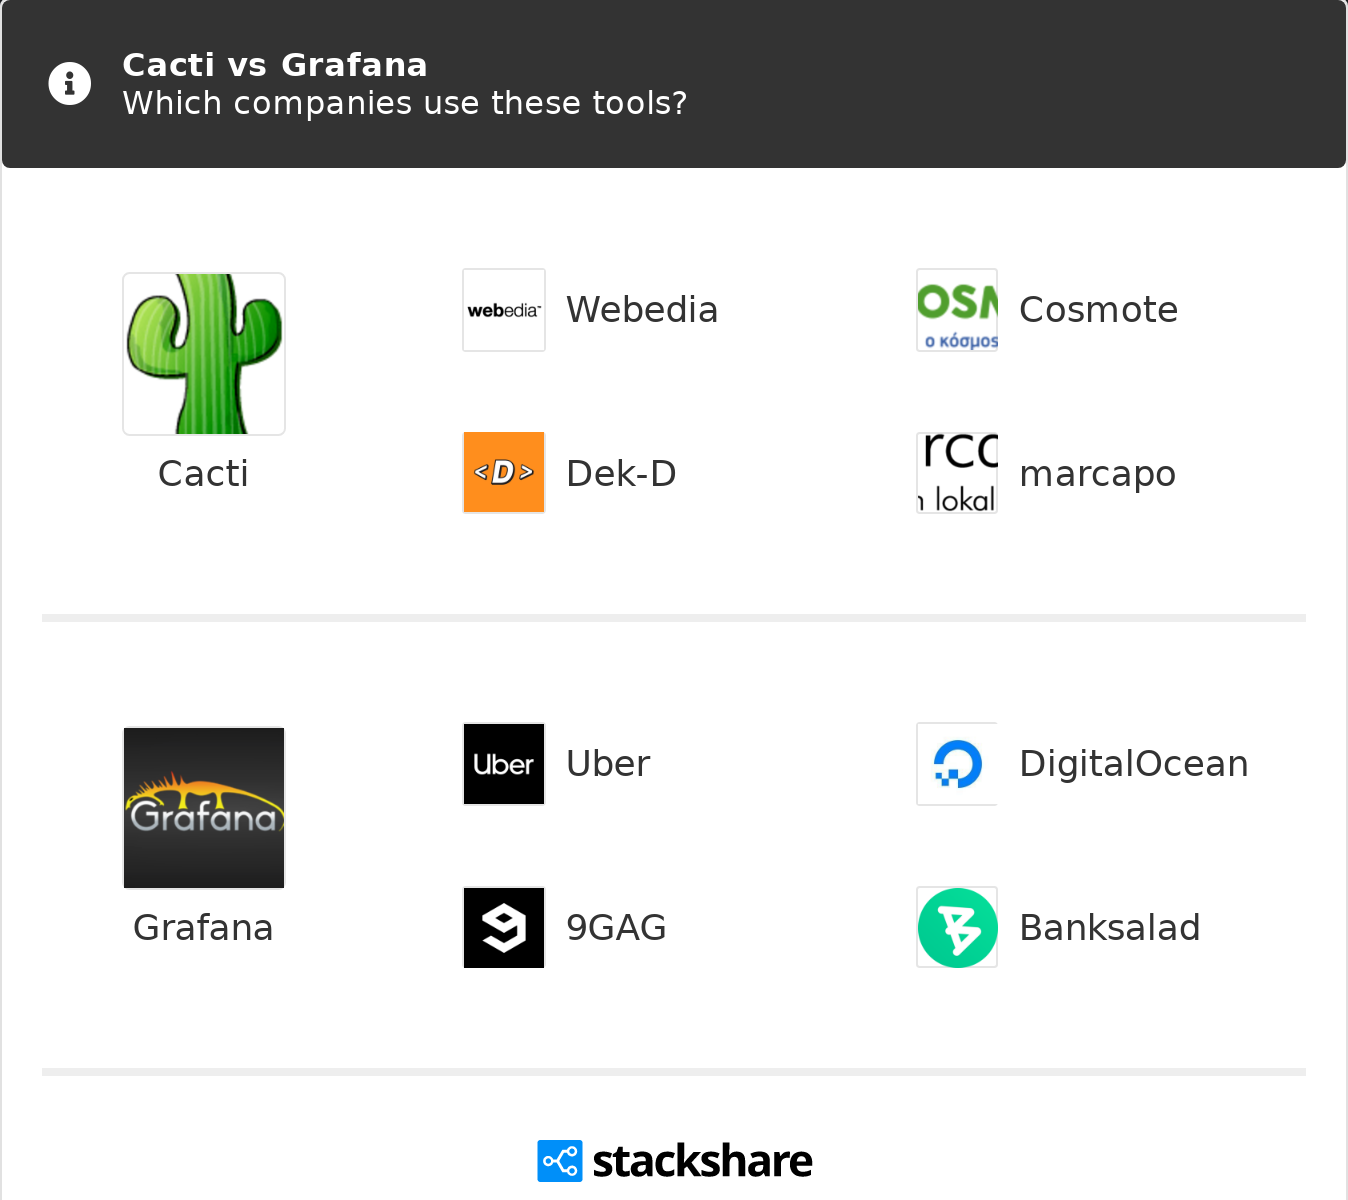 Cacti vs Grafana | What are the differences?